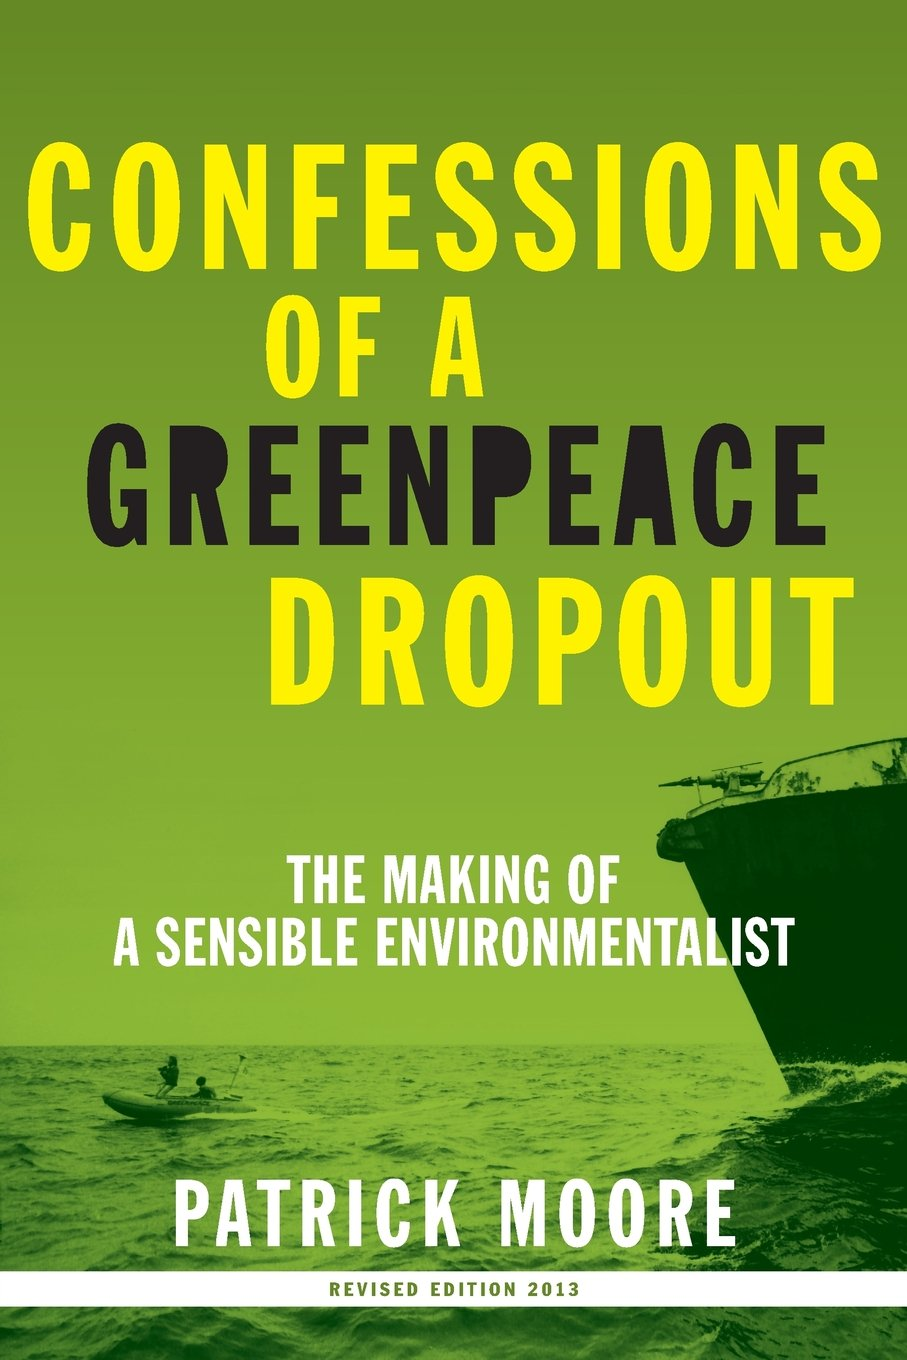 Download Confessions of a Greenpeace Dropout: The Making of a Sensible Environmentalist PDF